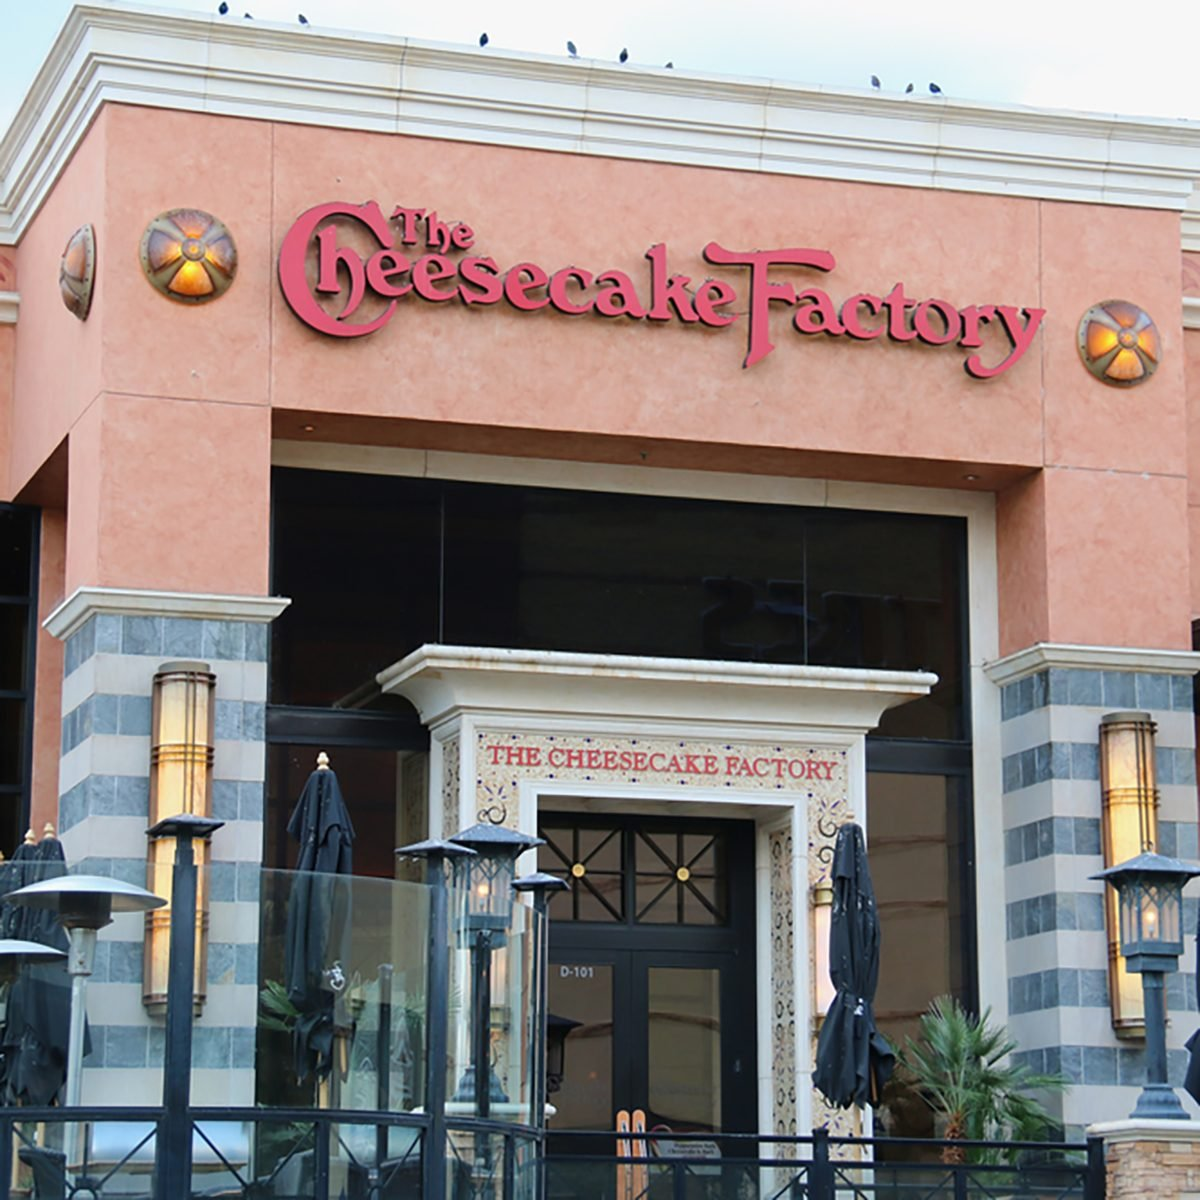 The Cheesecake Factory is a distributor of cheesecakes and restaurant in the United States